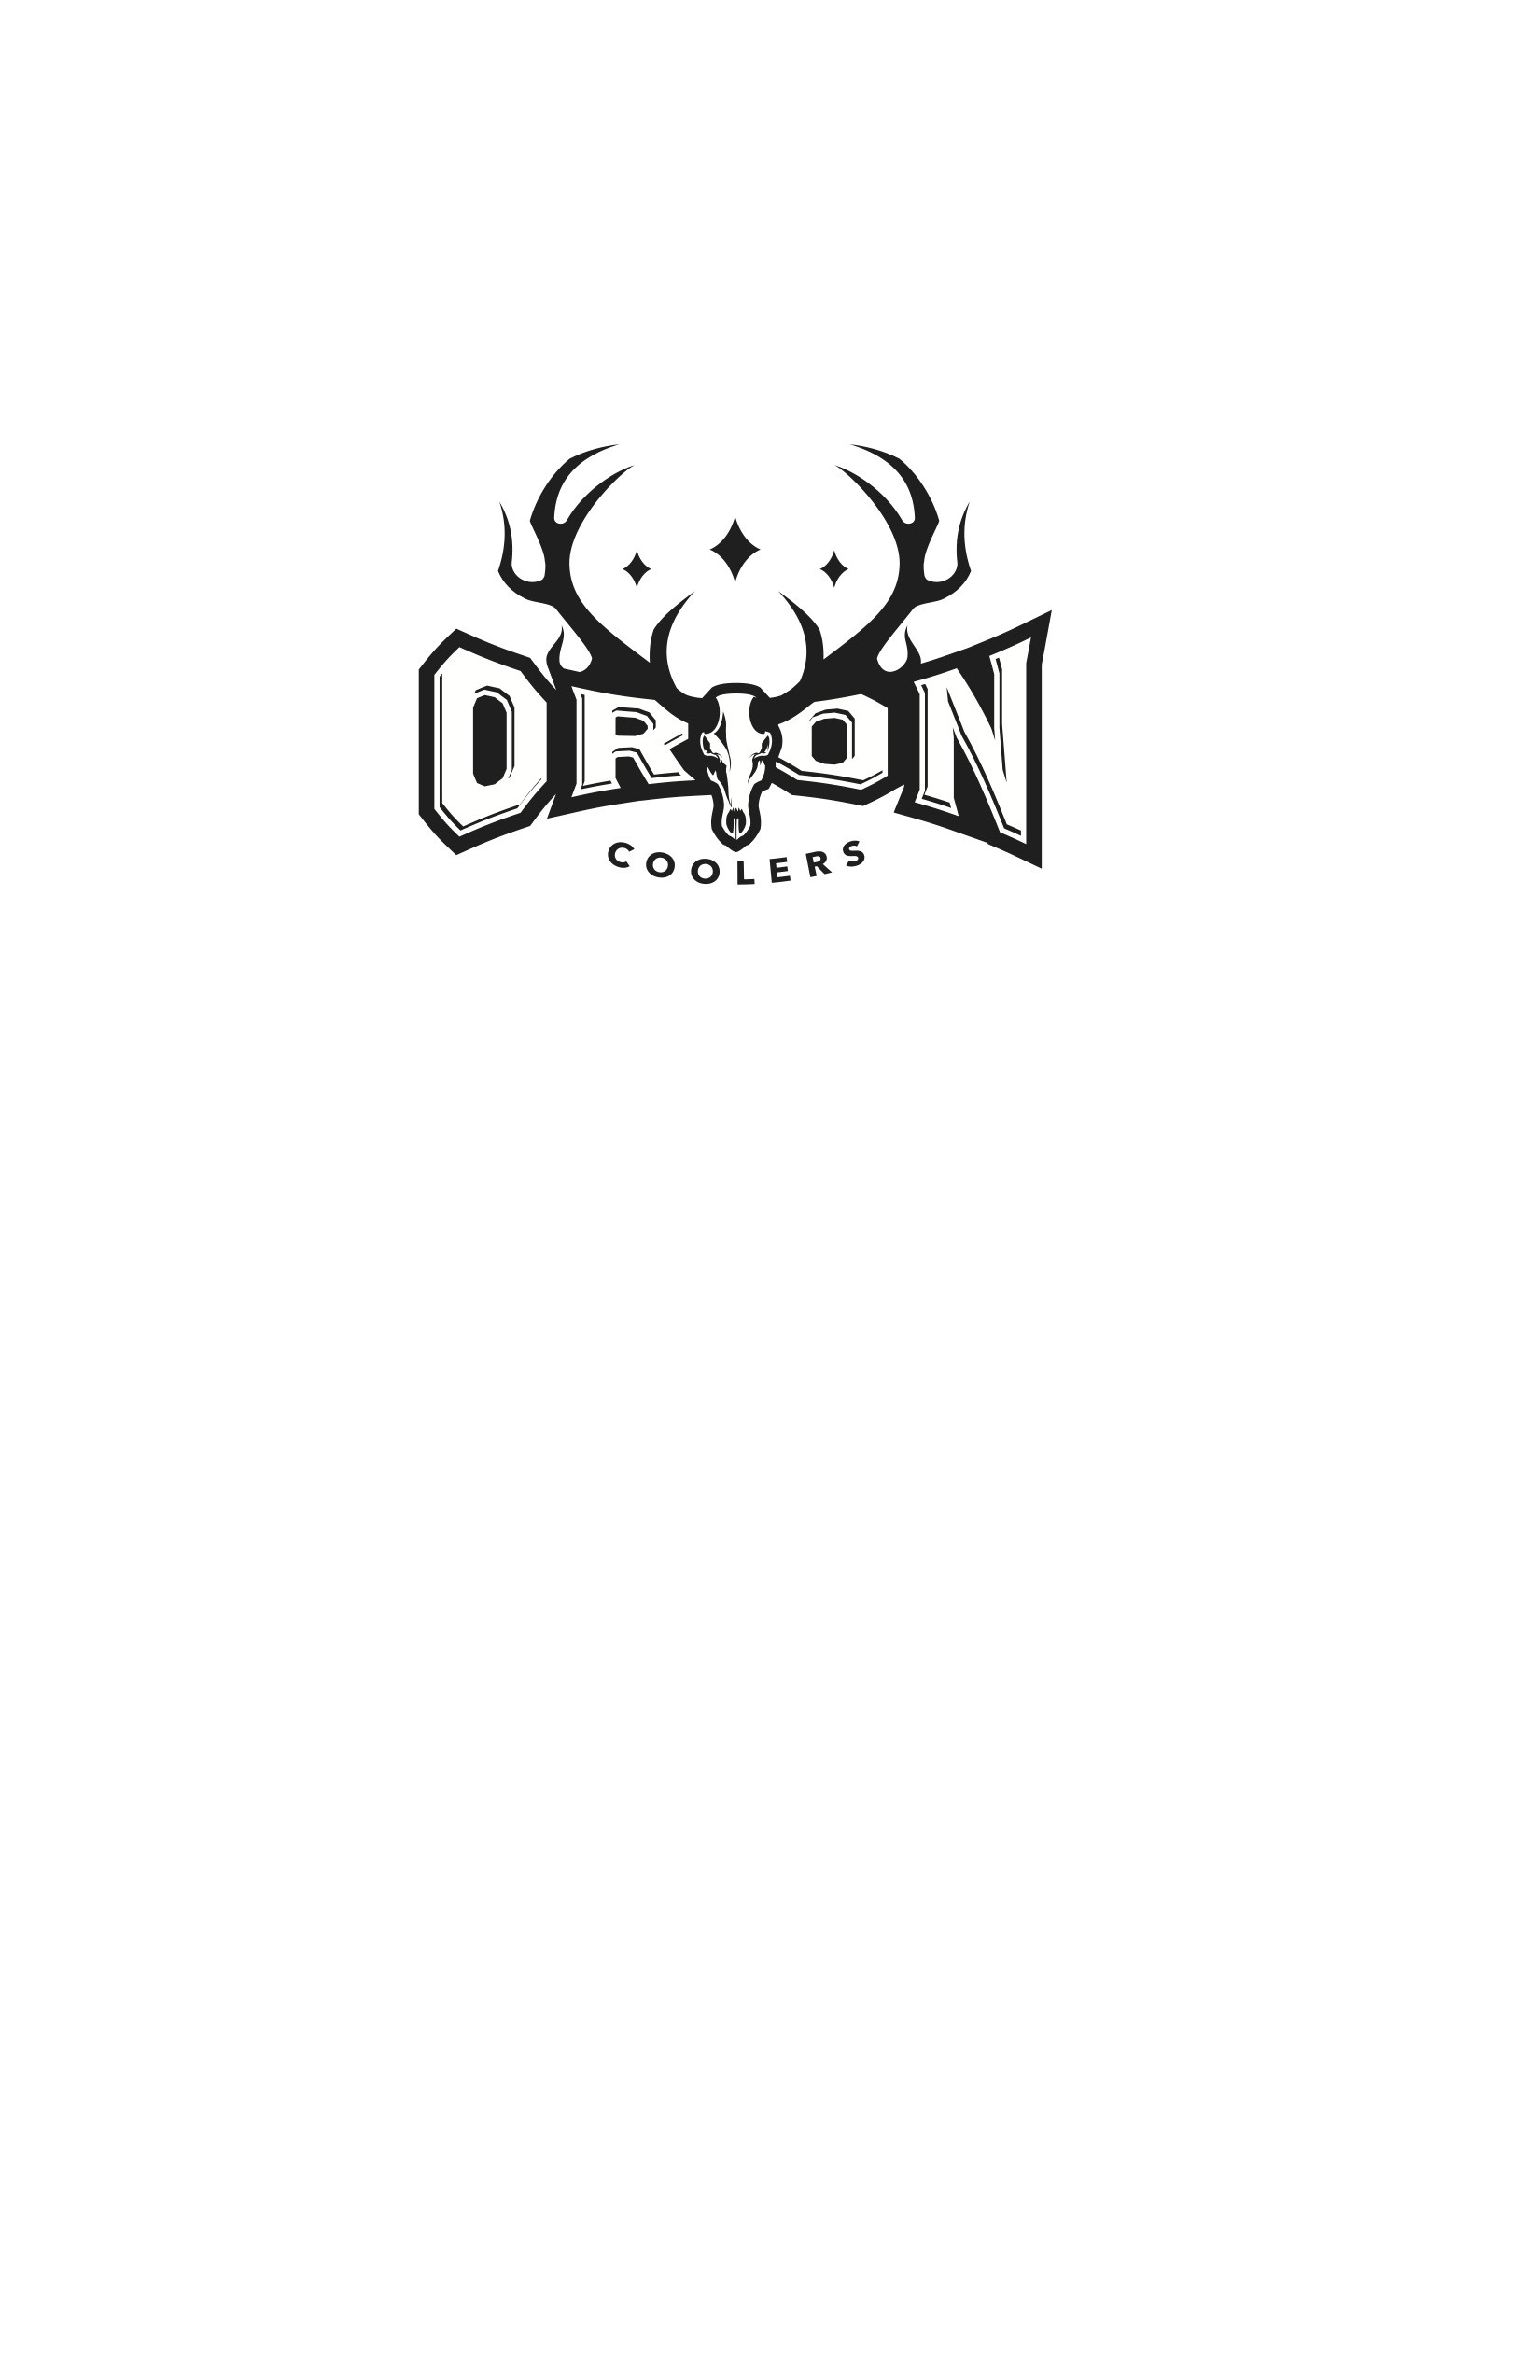 ORION-COOLERS-logo-1c